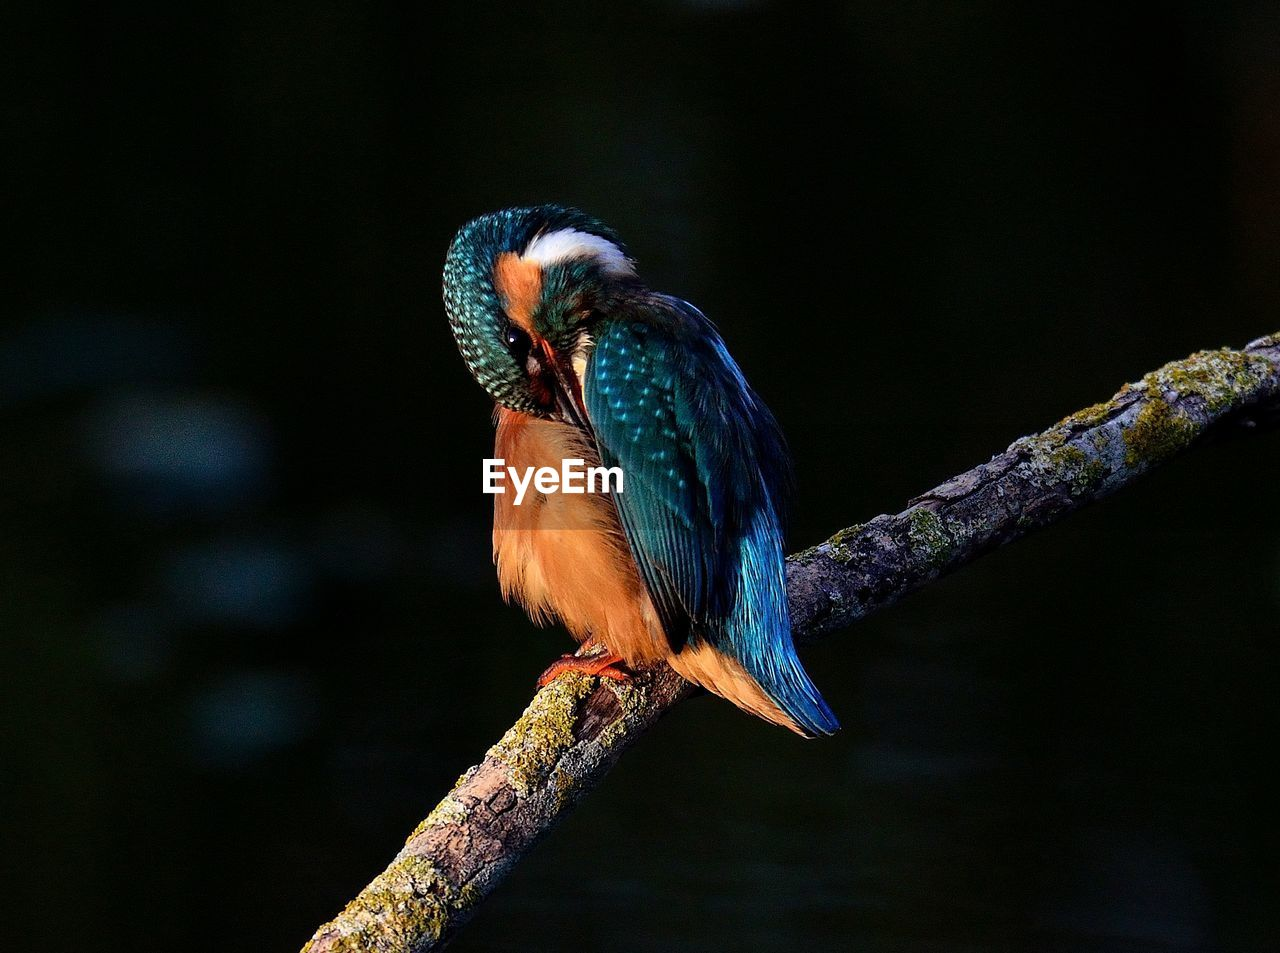 vertebrate, bird, perching, animal, animal wildlife, animals in the wild, animal themes, one animal, branch, tree, kingfisher, focus on foreground, no people, close-up, nature, beak, plant, day, blue, looking away, stick - plant part